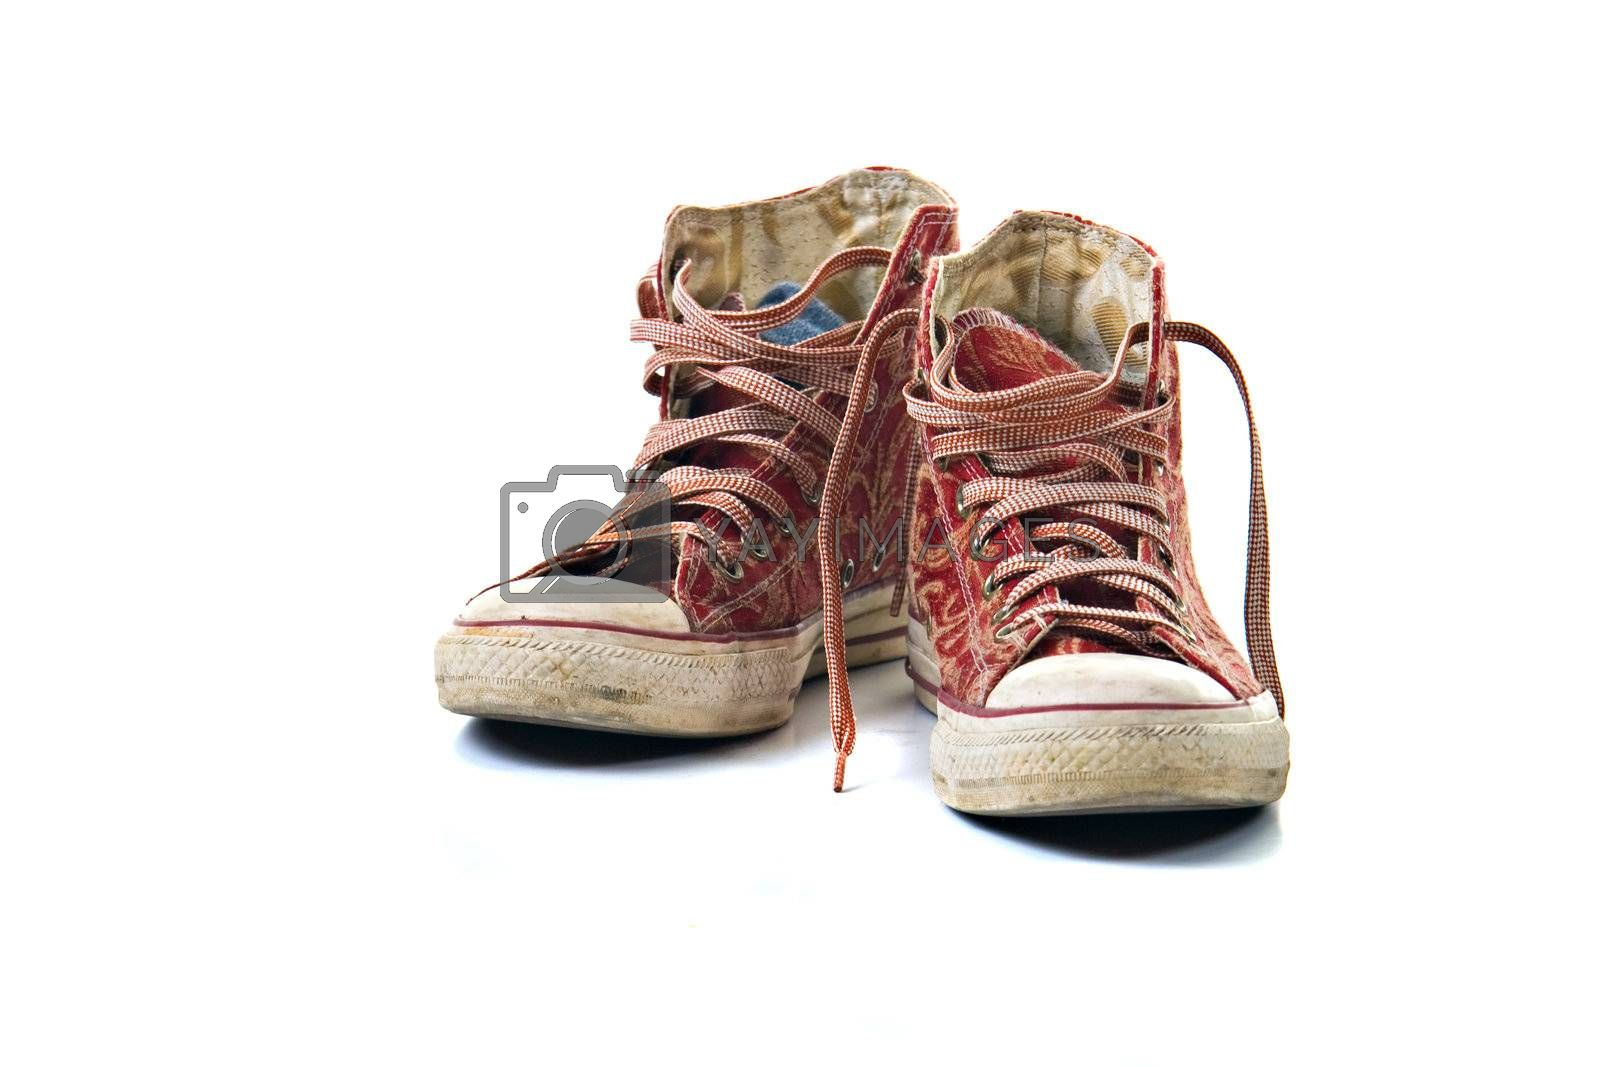 Old Sneakers by ajn